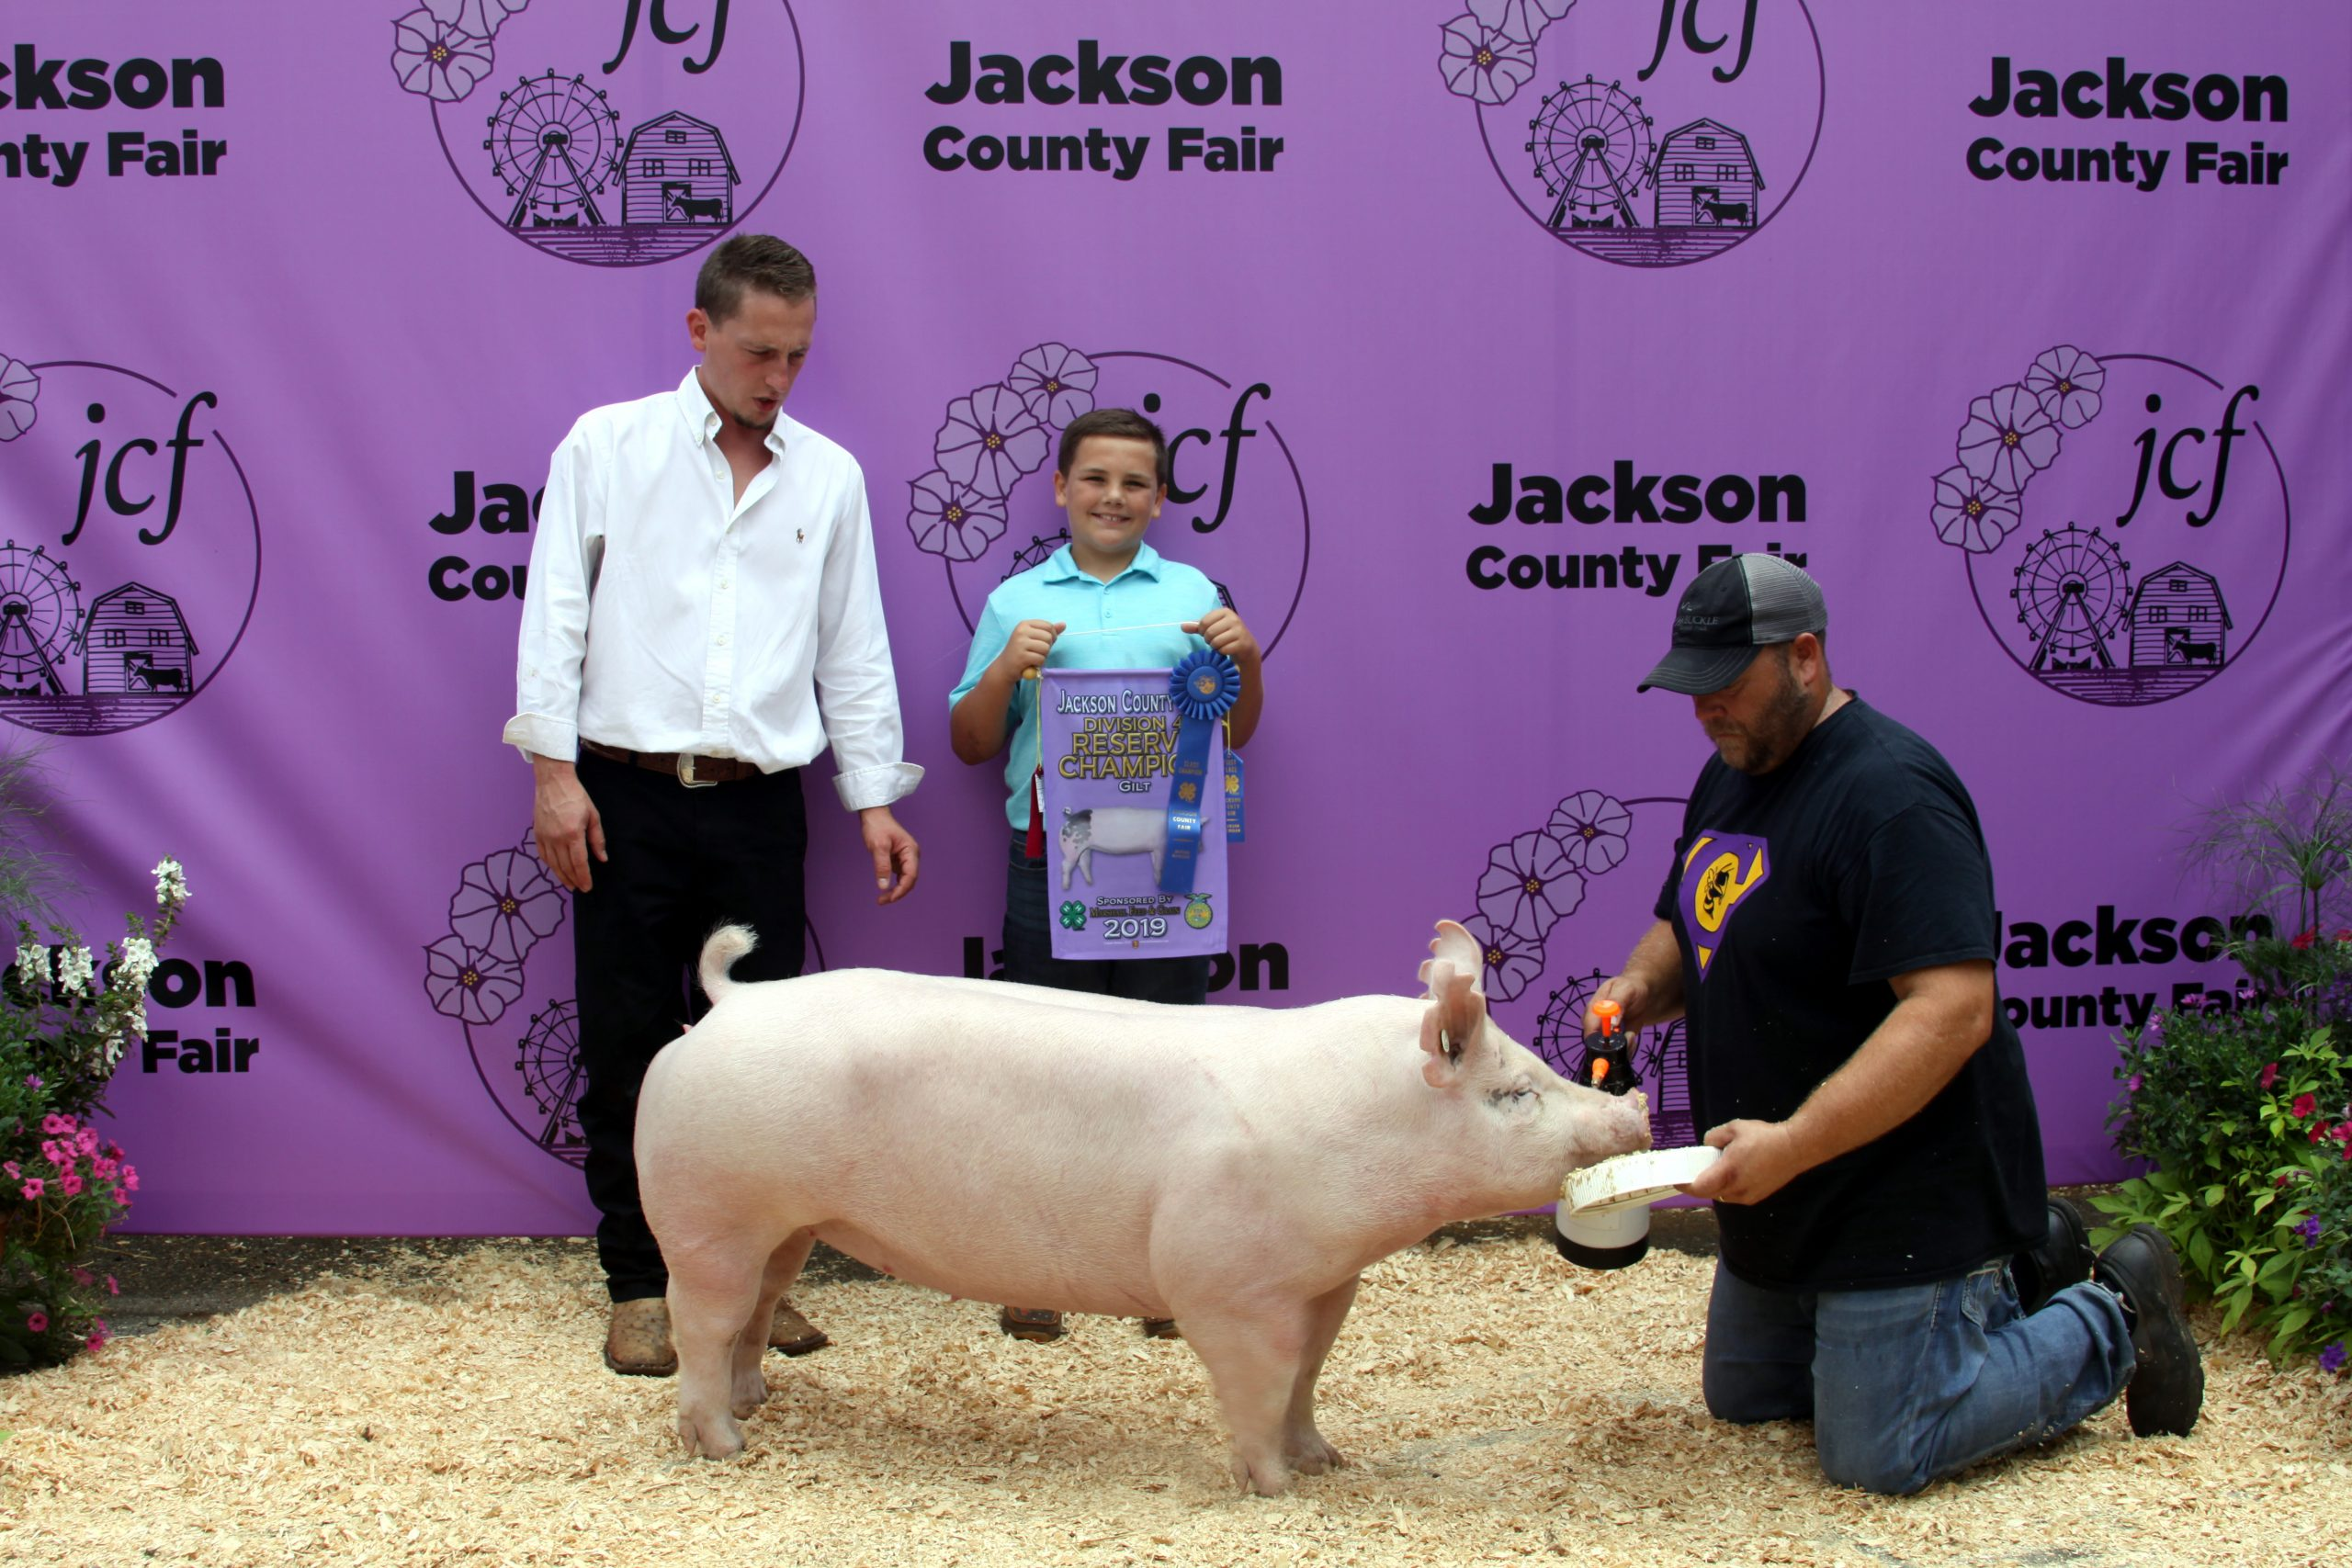 2019 Jackson County Fair, Division 4 Reserve Champion Gilt, Sired by Keg Stand